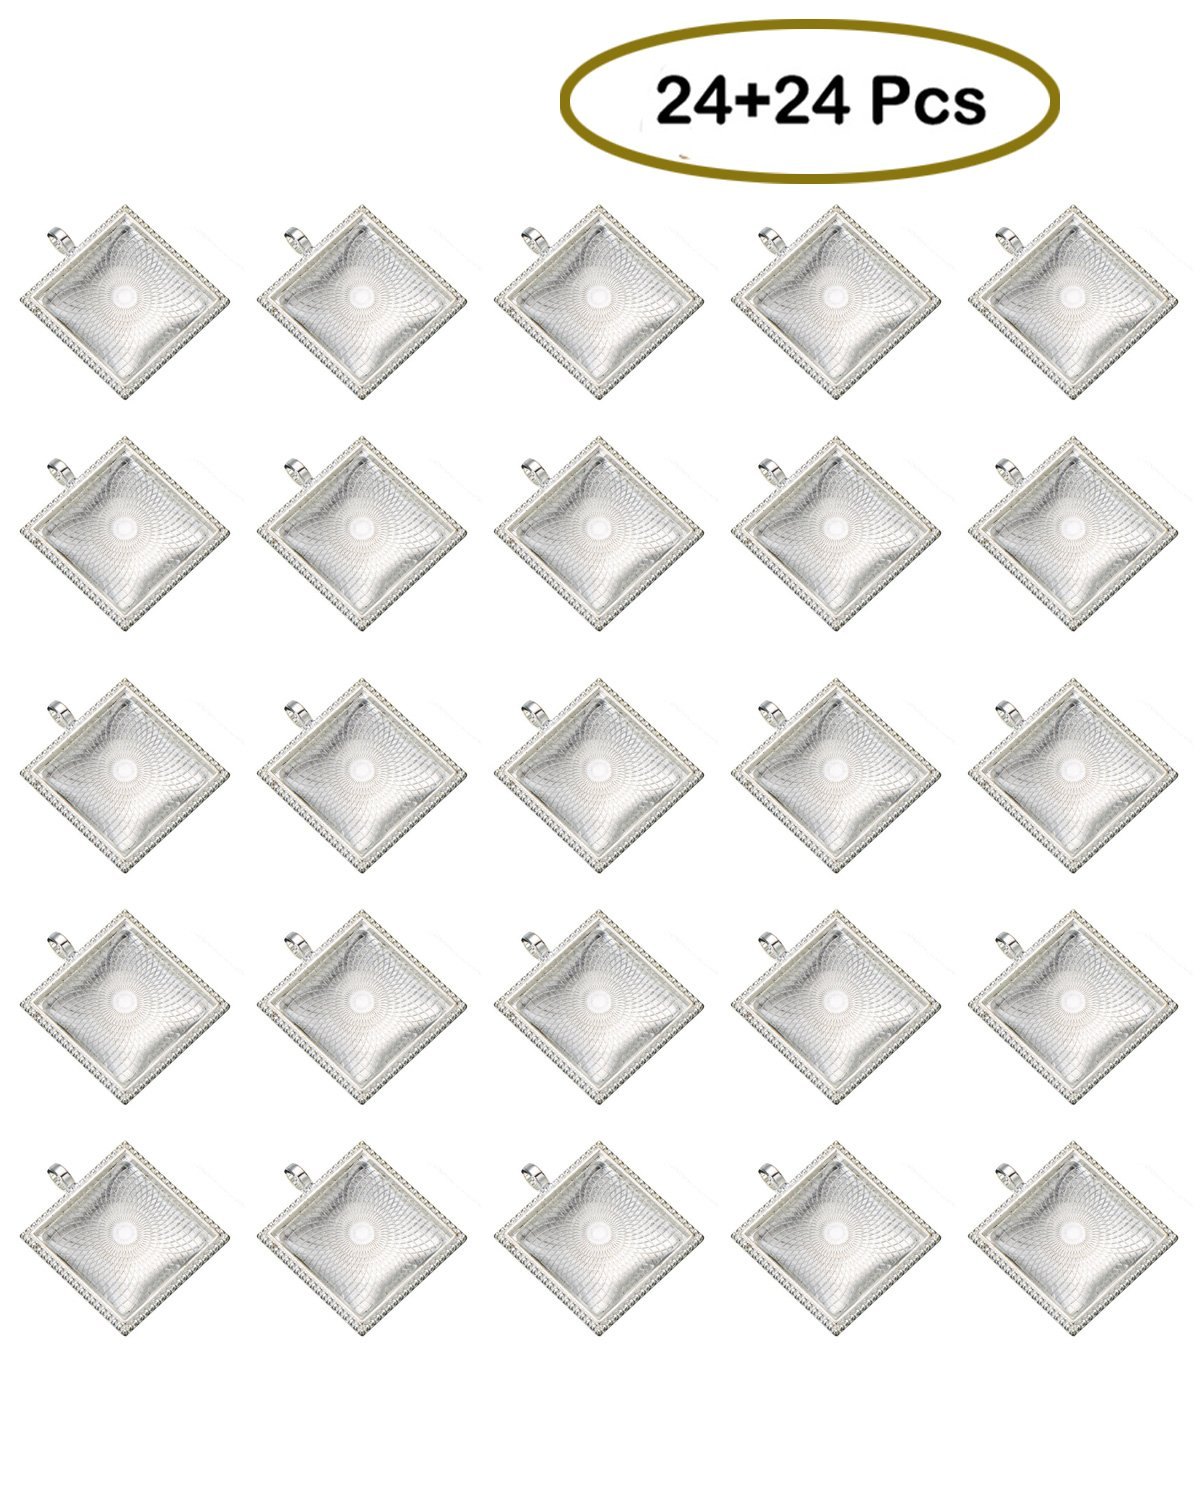 DEEBF 24 Pieces Transparent glass cabochons with 24 Silver Pendant Trays, clear glass square cabochon, Non-calibrated Square 1 inch/25mm For Photo Pendant Craft Jewelry Making